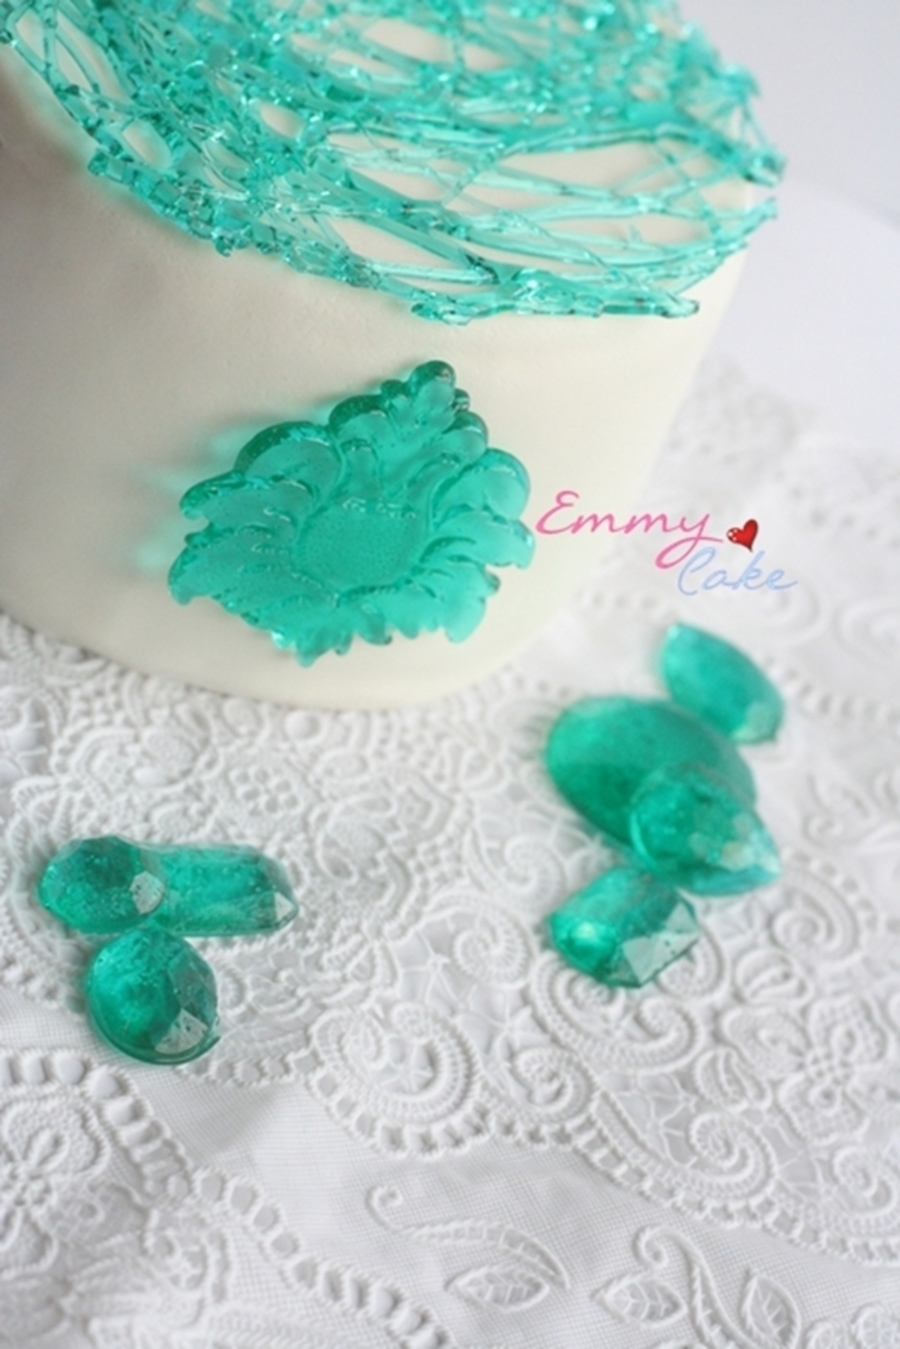 Glass Cake on Cake Central